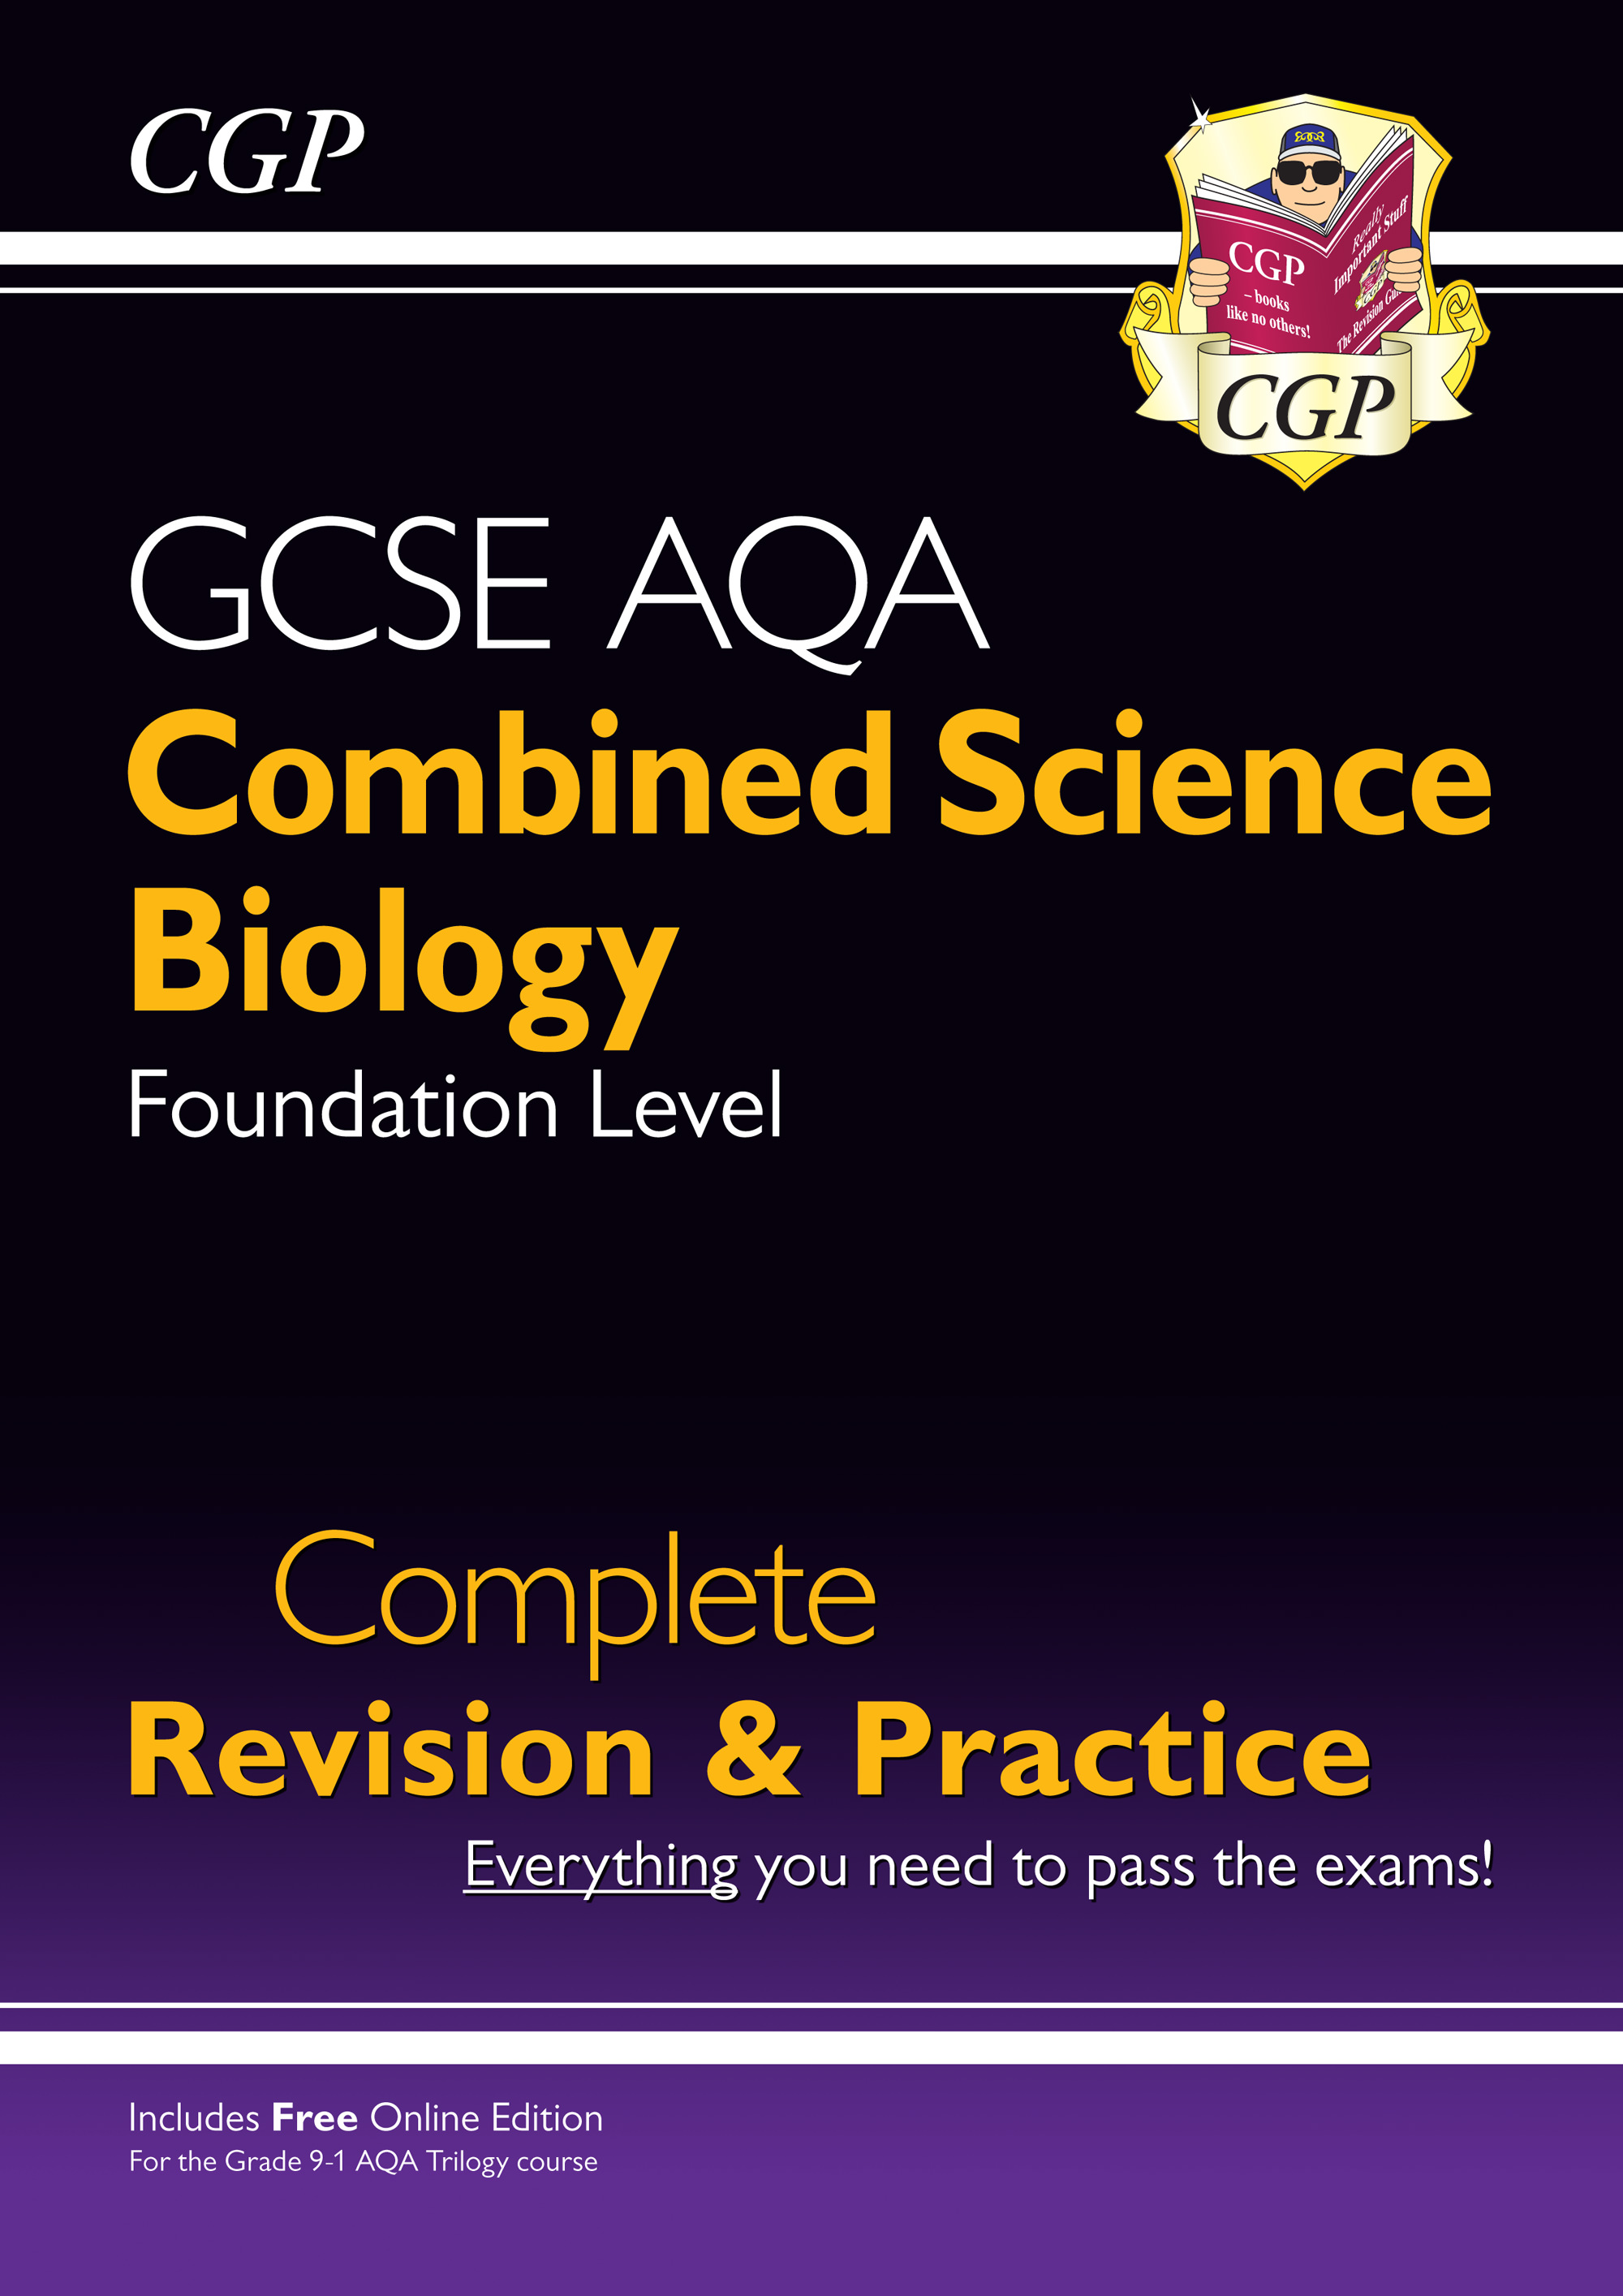 SCBAFS41 - 9-1 GCSE Combined Science: Biology AQA Foundation Complete Revision & Practice with Onlin